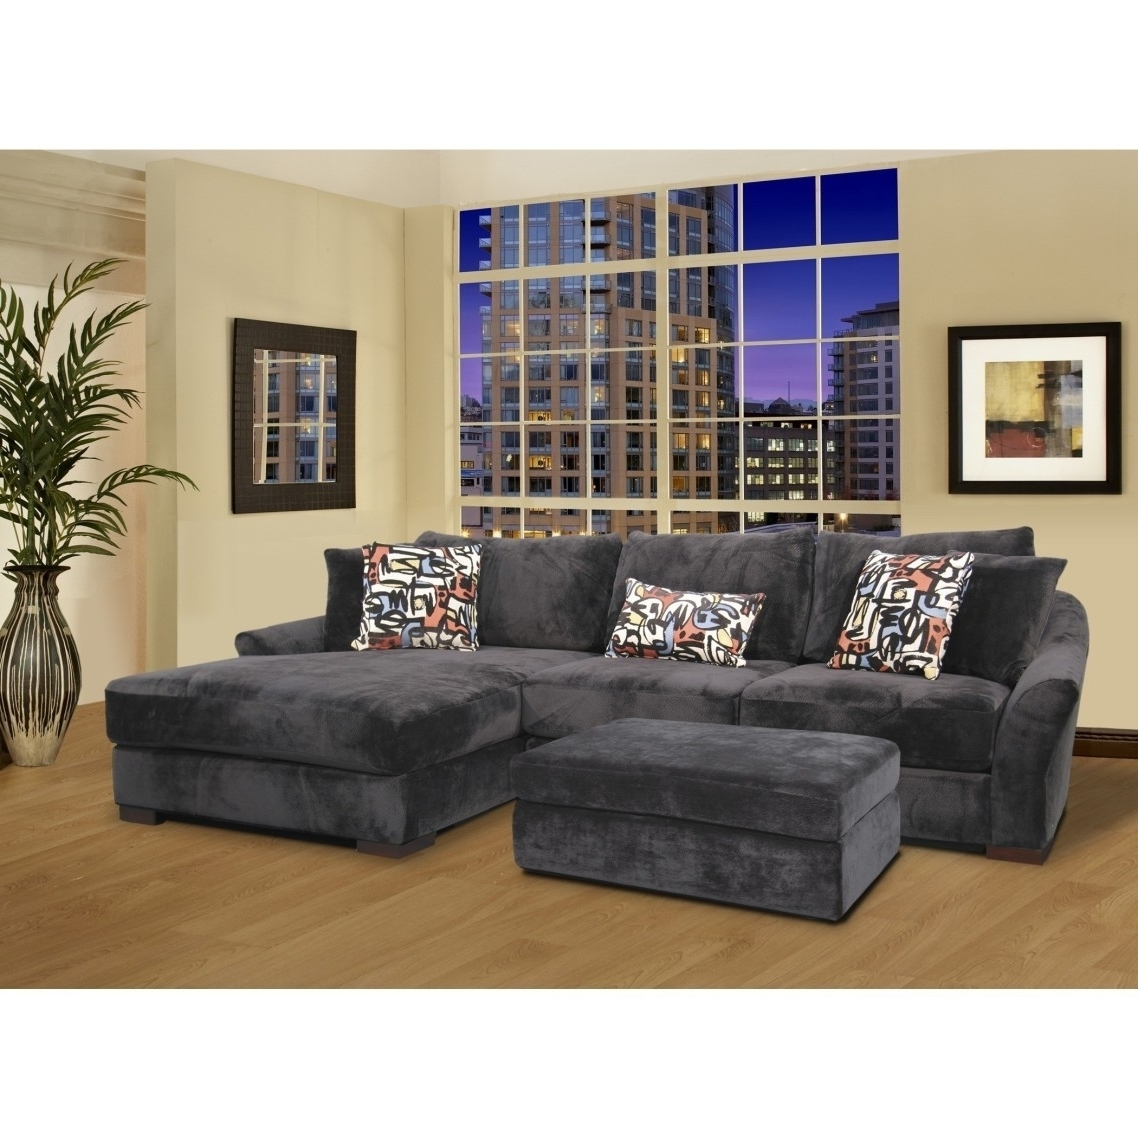 20 Ideas Of Ventura County Sectional Sofas In Ventura County Sectional Sofas (Image 3 of 10)